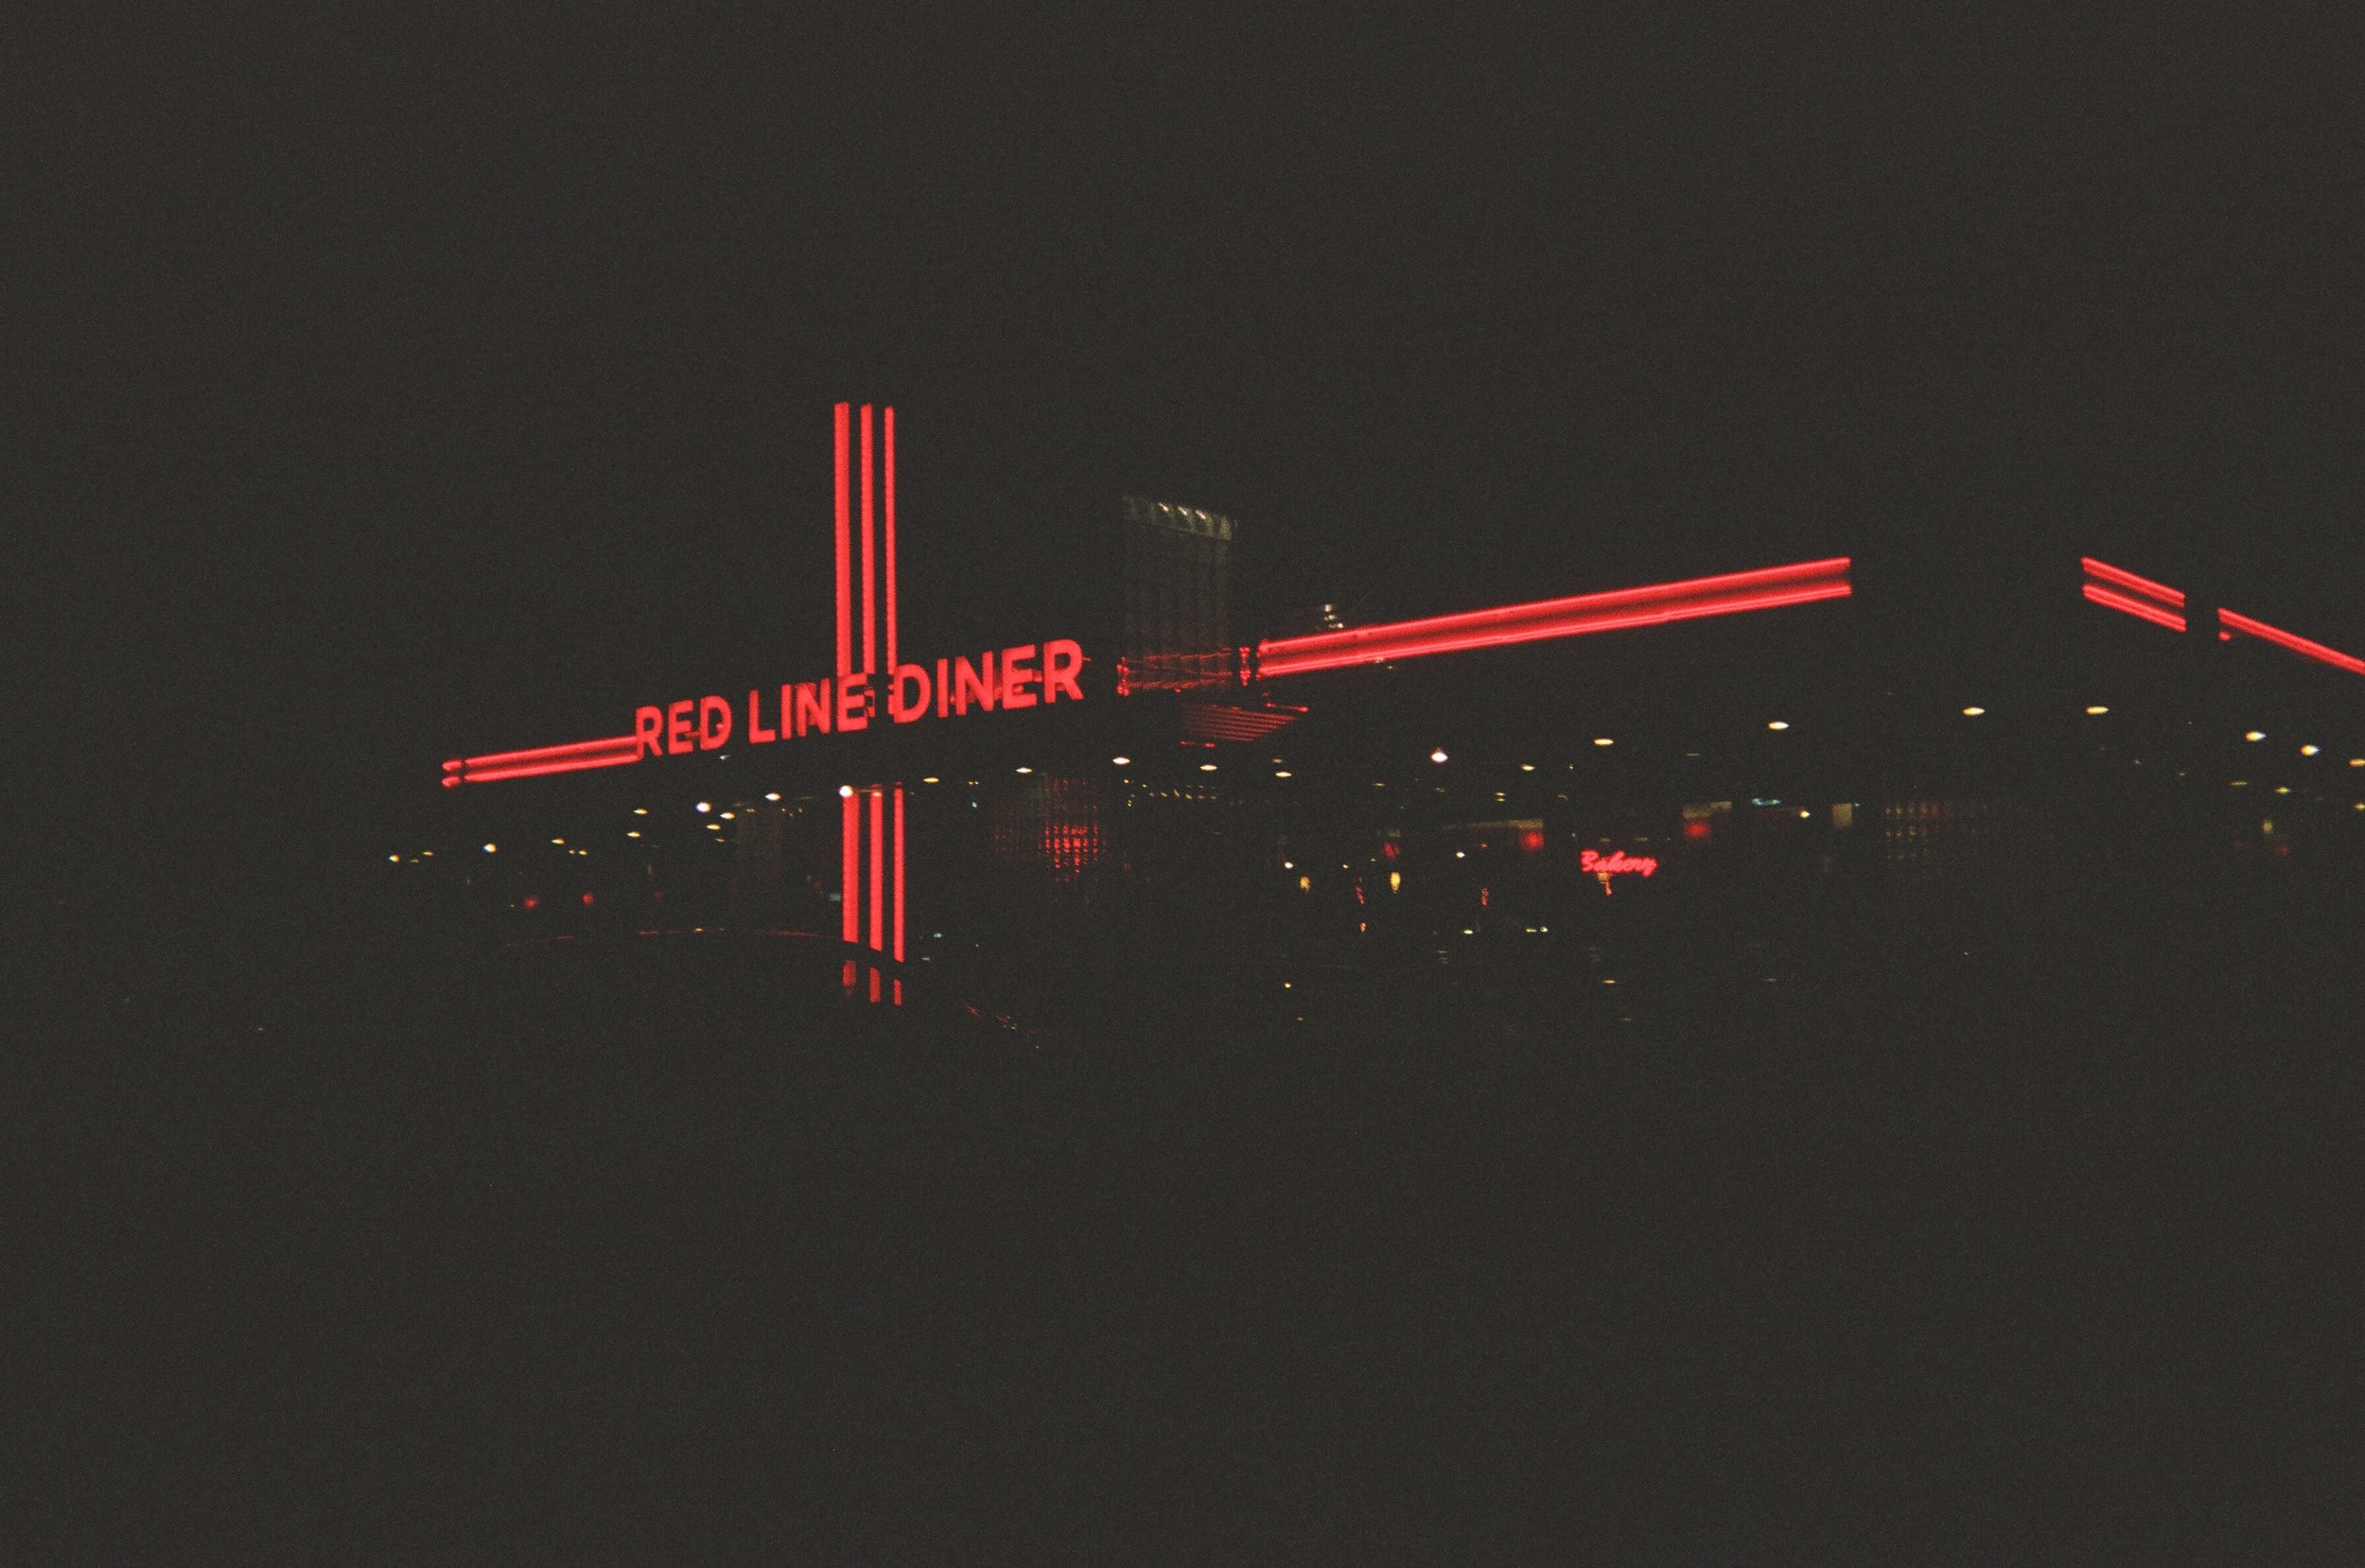 A diner we frequented during our stay–Red Line Diner.